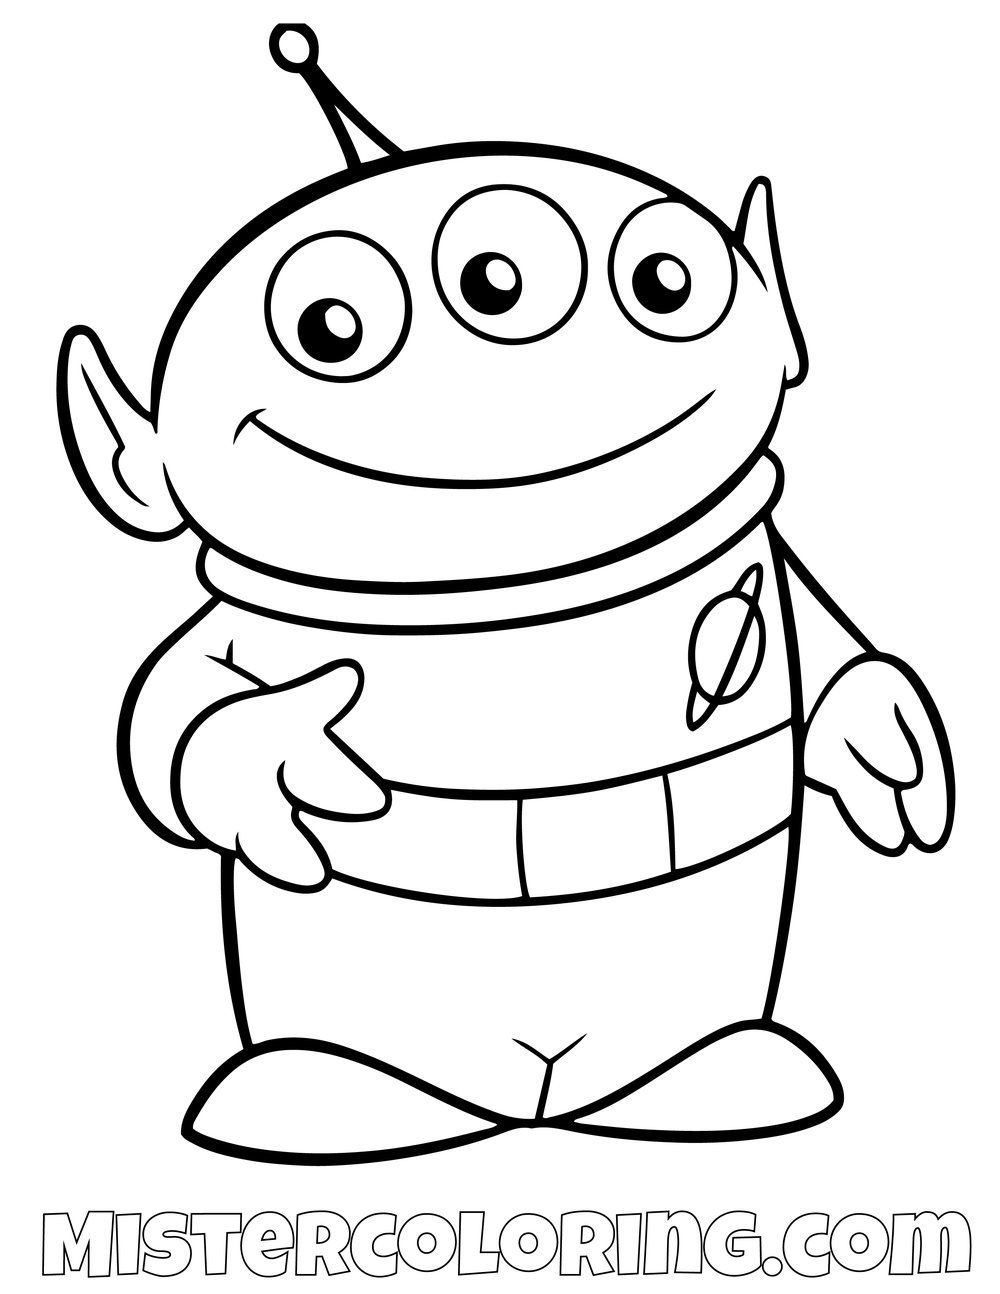 Alien Toy Story Coloring Page Toy Story Coloring Pages Disney Coloring Pages Toy Story Crafts